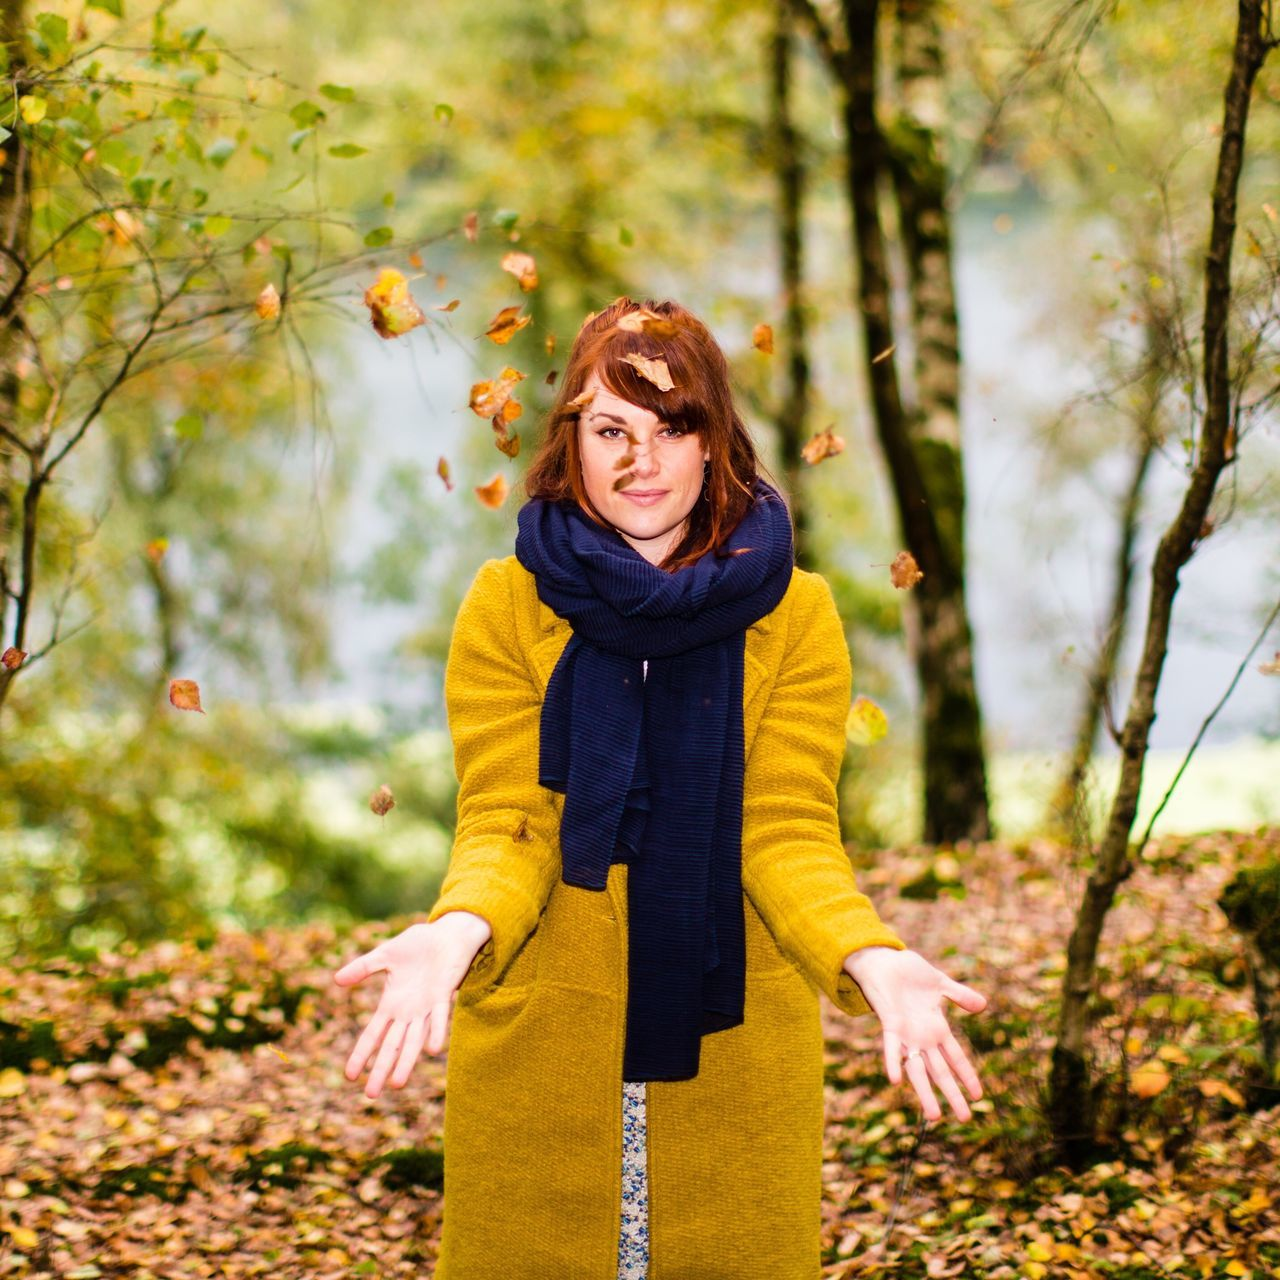 Autumn Lady | from my Autumn Sessions - no filter, 50mm - endlich Herbst 🍁🍁🍁 Leisure Activity Lifestyles Front View Casual Clothing Person Yellow Standing Portrait Focus On Foreground Looking At Camera Day Park - Man Made Space Young Adult Nature Outdoors Tourism Vacations Autumn Leaves Autumn AutumnSessions Outdoor Photography Looking At Camera TakeoverContrast